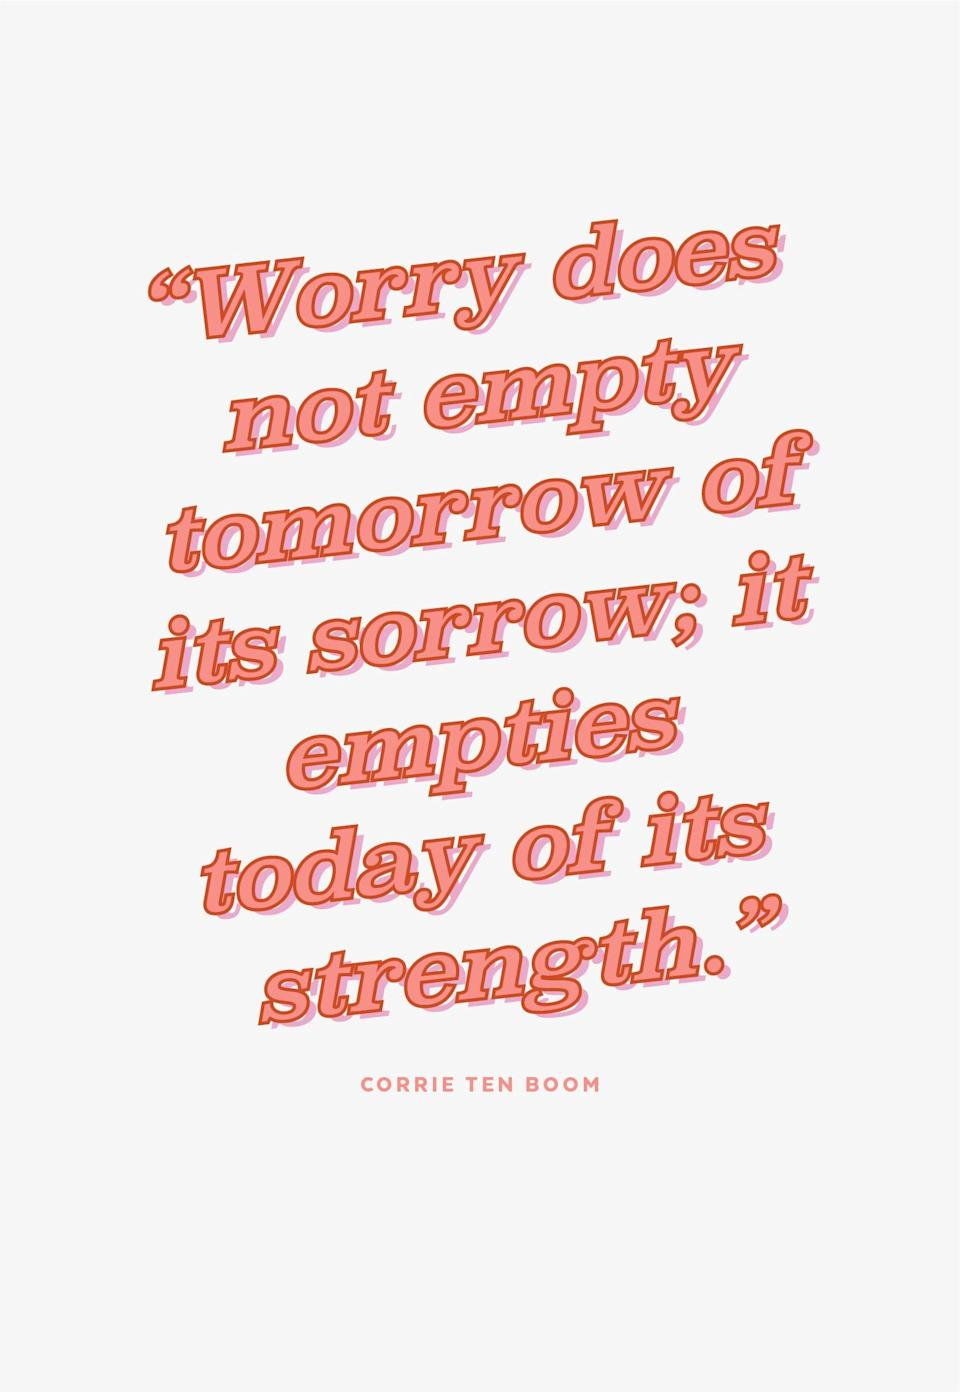 """<p><b>Quote:</b></p> <p>""""Worry does not empty tomorrow of its sorrow; it empties today of its strength.""""</p> <p><strong>Lesson to learn:</strong></p> <p>Worrying is not going to help you resolve anything - it only depletes your internal resources.</p>"""